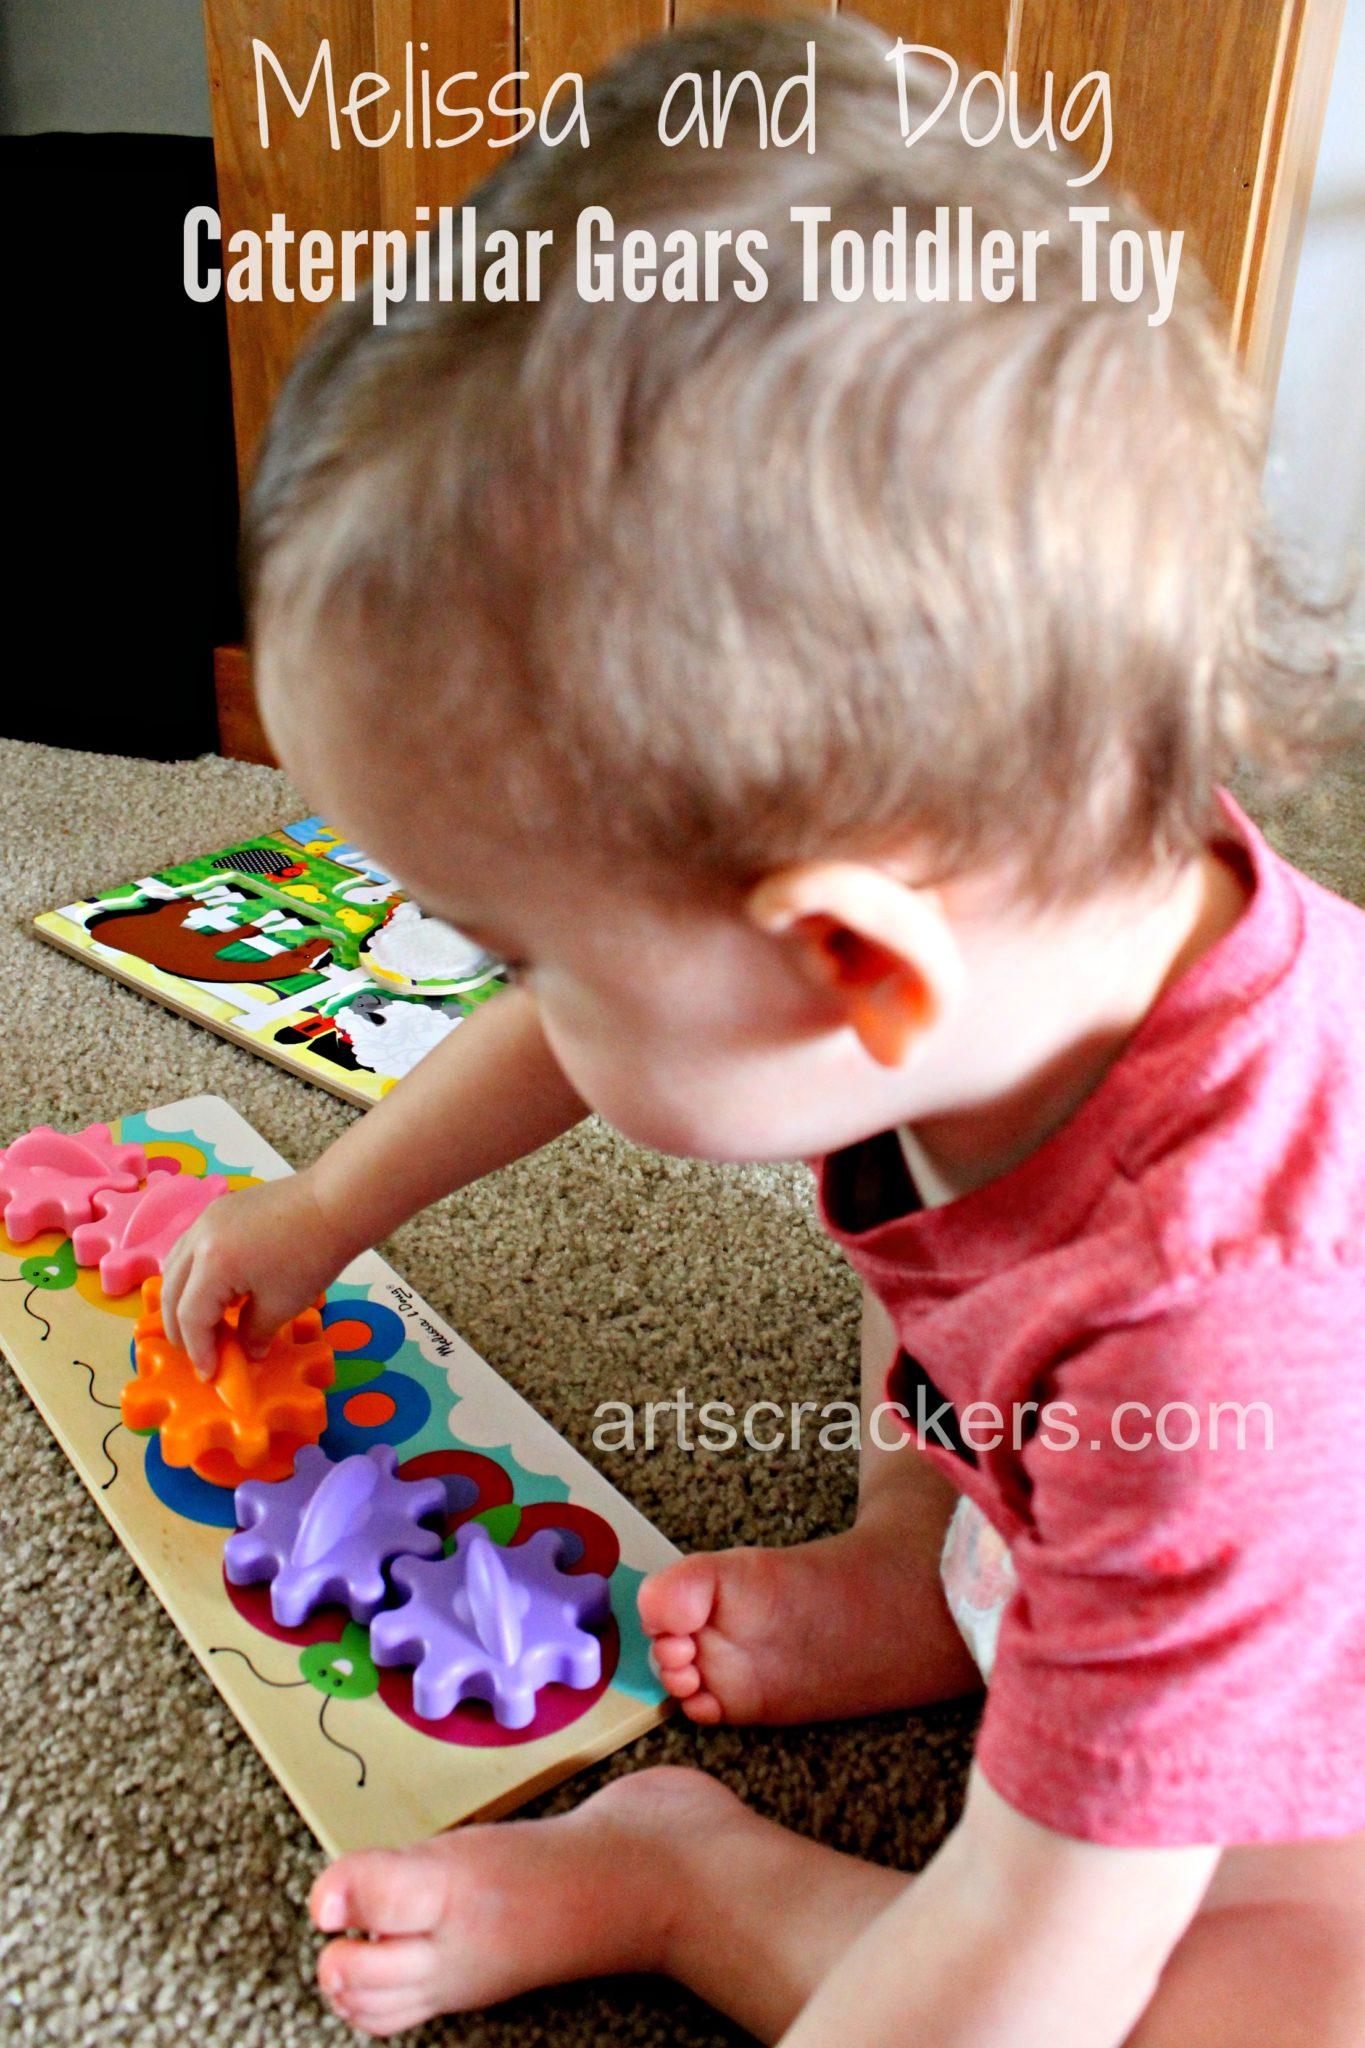 Melissa and Doug Caterpillar Gears Toddler Toy. Click the picture to read the review.